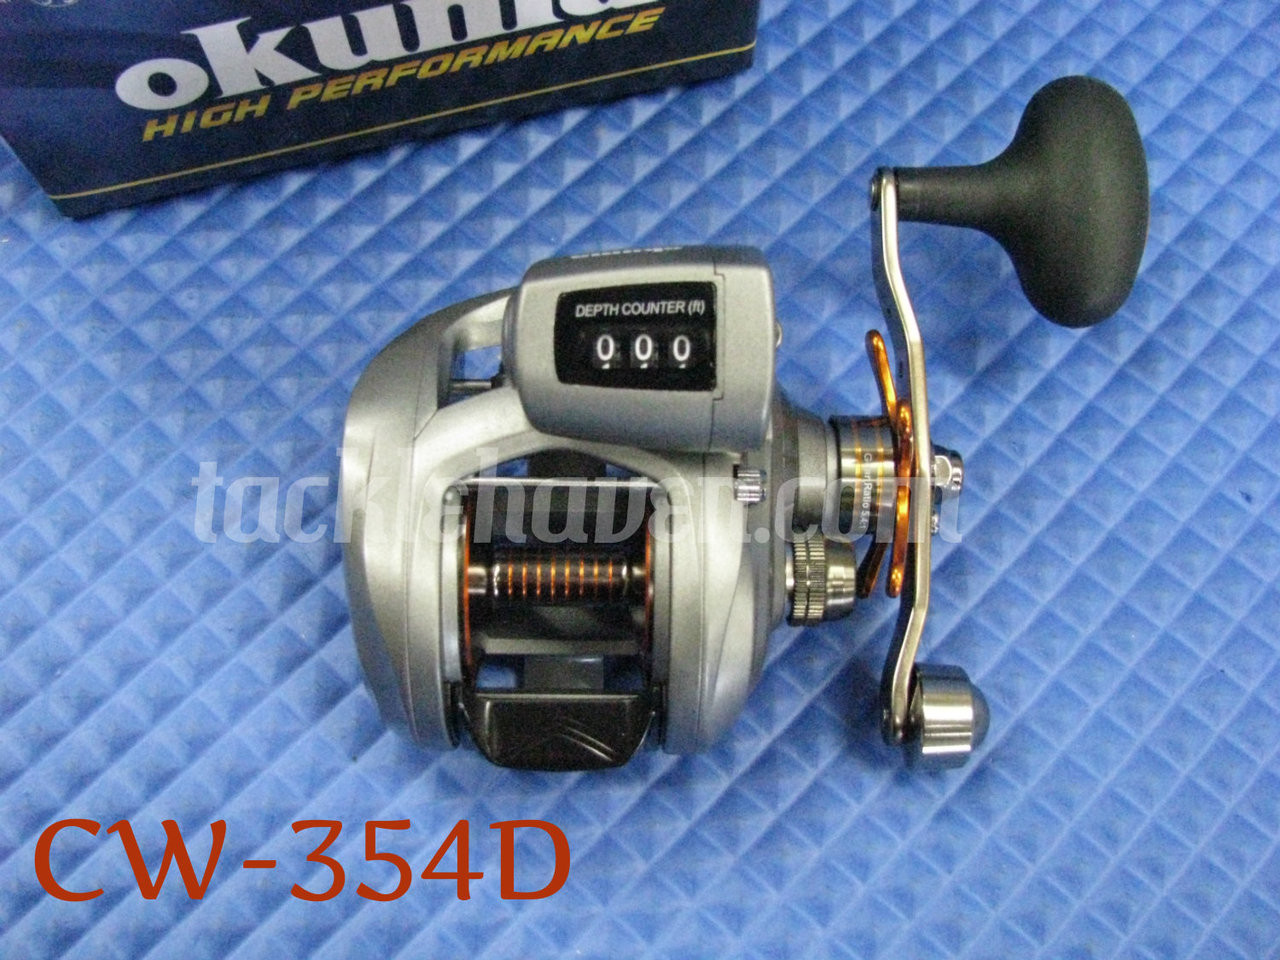 Okuma Cold Water Low Profile Line Counter Reels